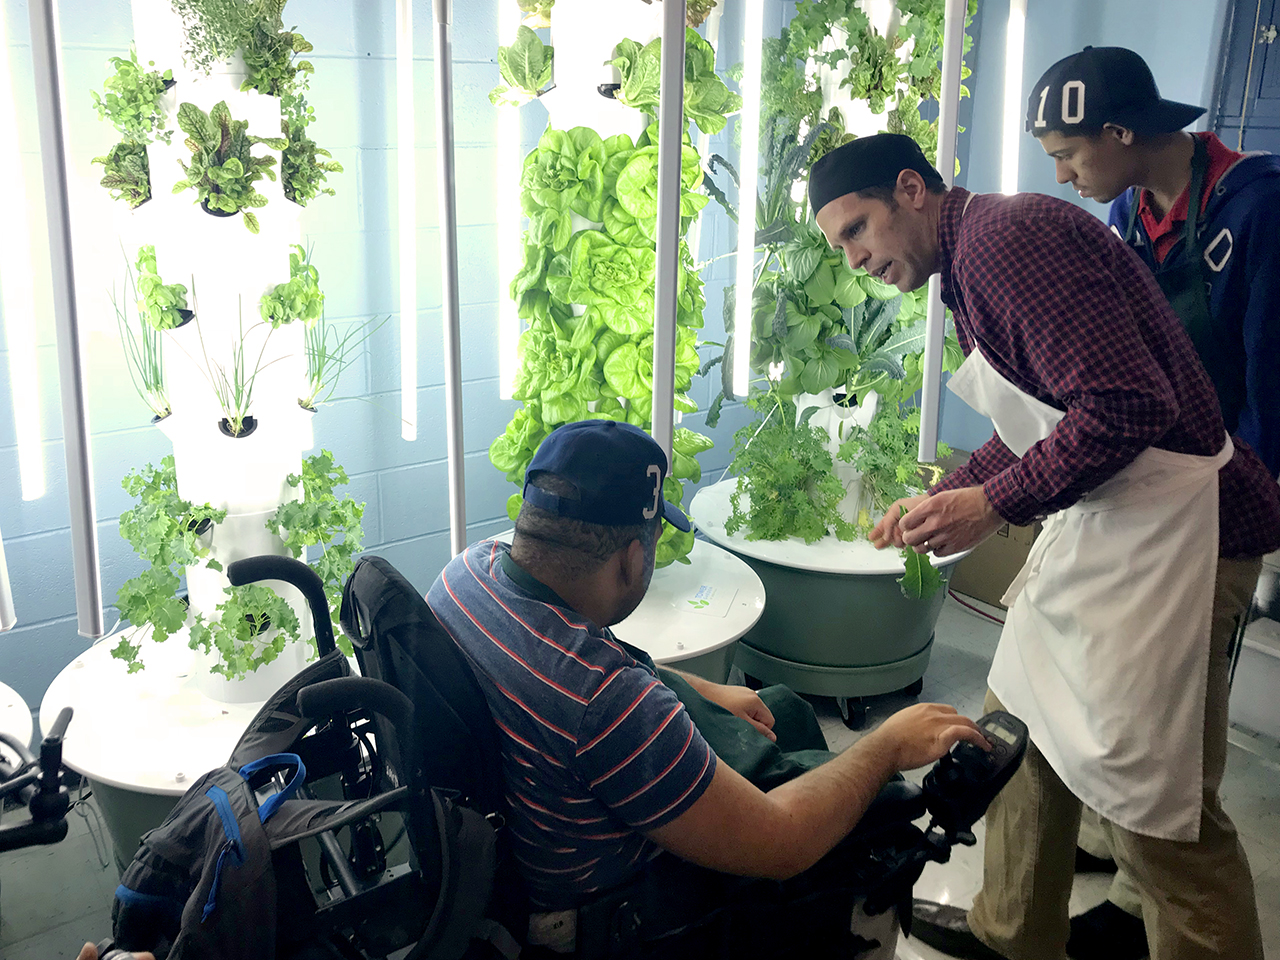 Green Bronx Machine designed, built, and continues to support the first year-round, wheelchair-accessible urban farm and culinary training kitchen in the nation. Modeled after The National Health, Wellness & Learning Center, this unique and 100% accessible classroom allows special needs students...